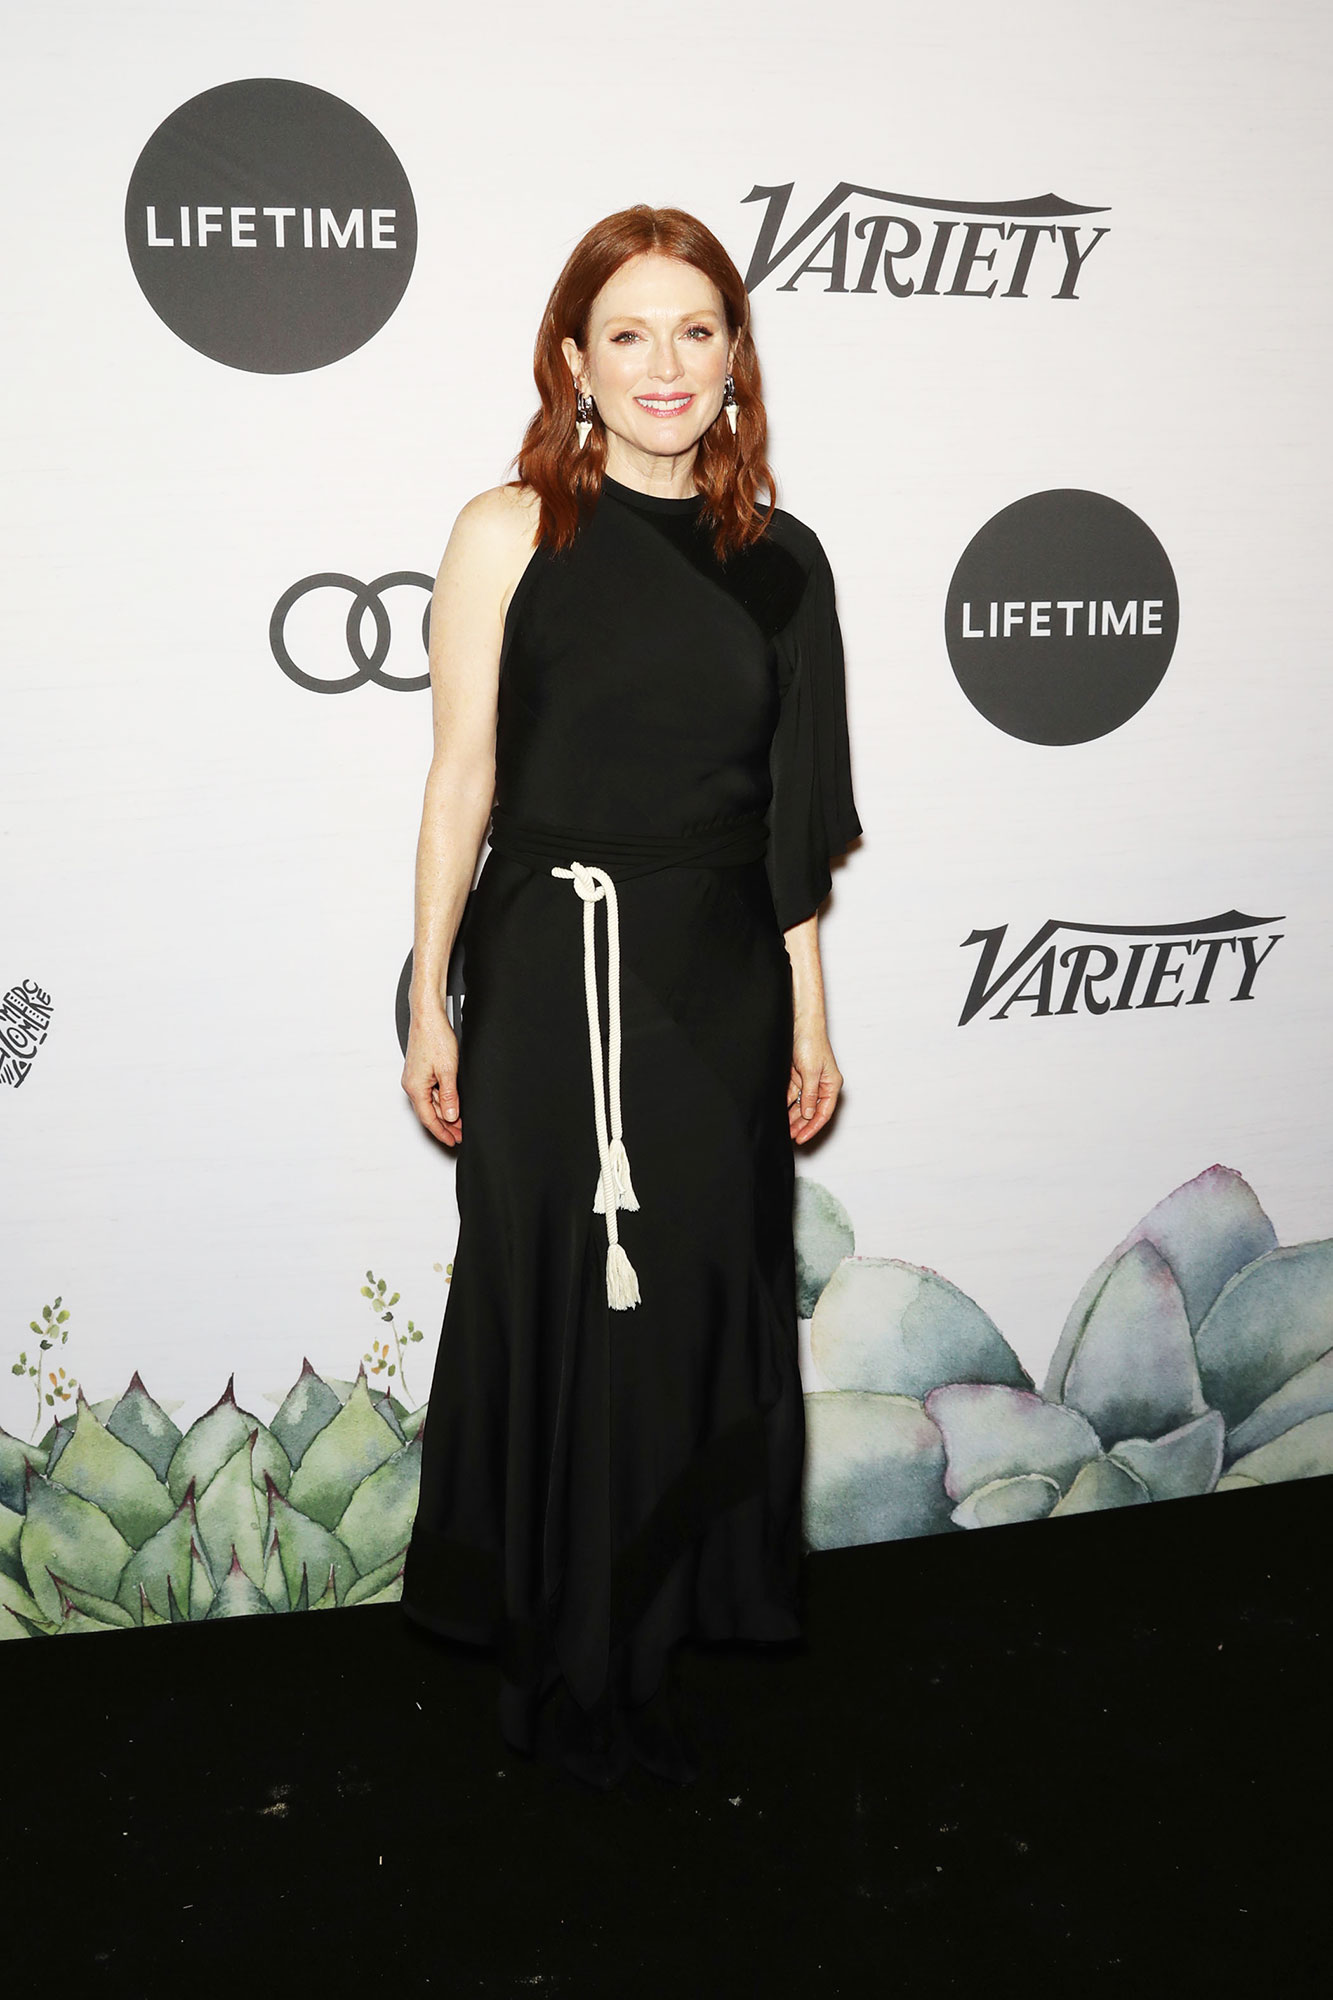 Julianne Moore Variety's Power of Women - The Oscar-winning actress wore a long black dress with a white rope tied at the waist.